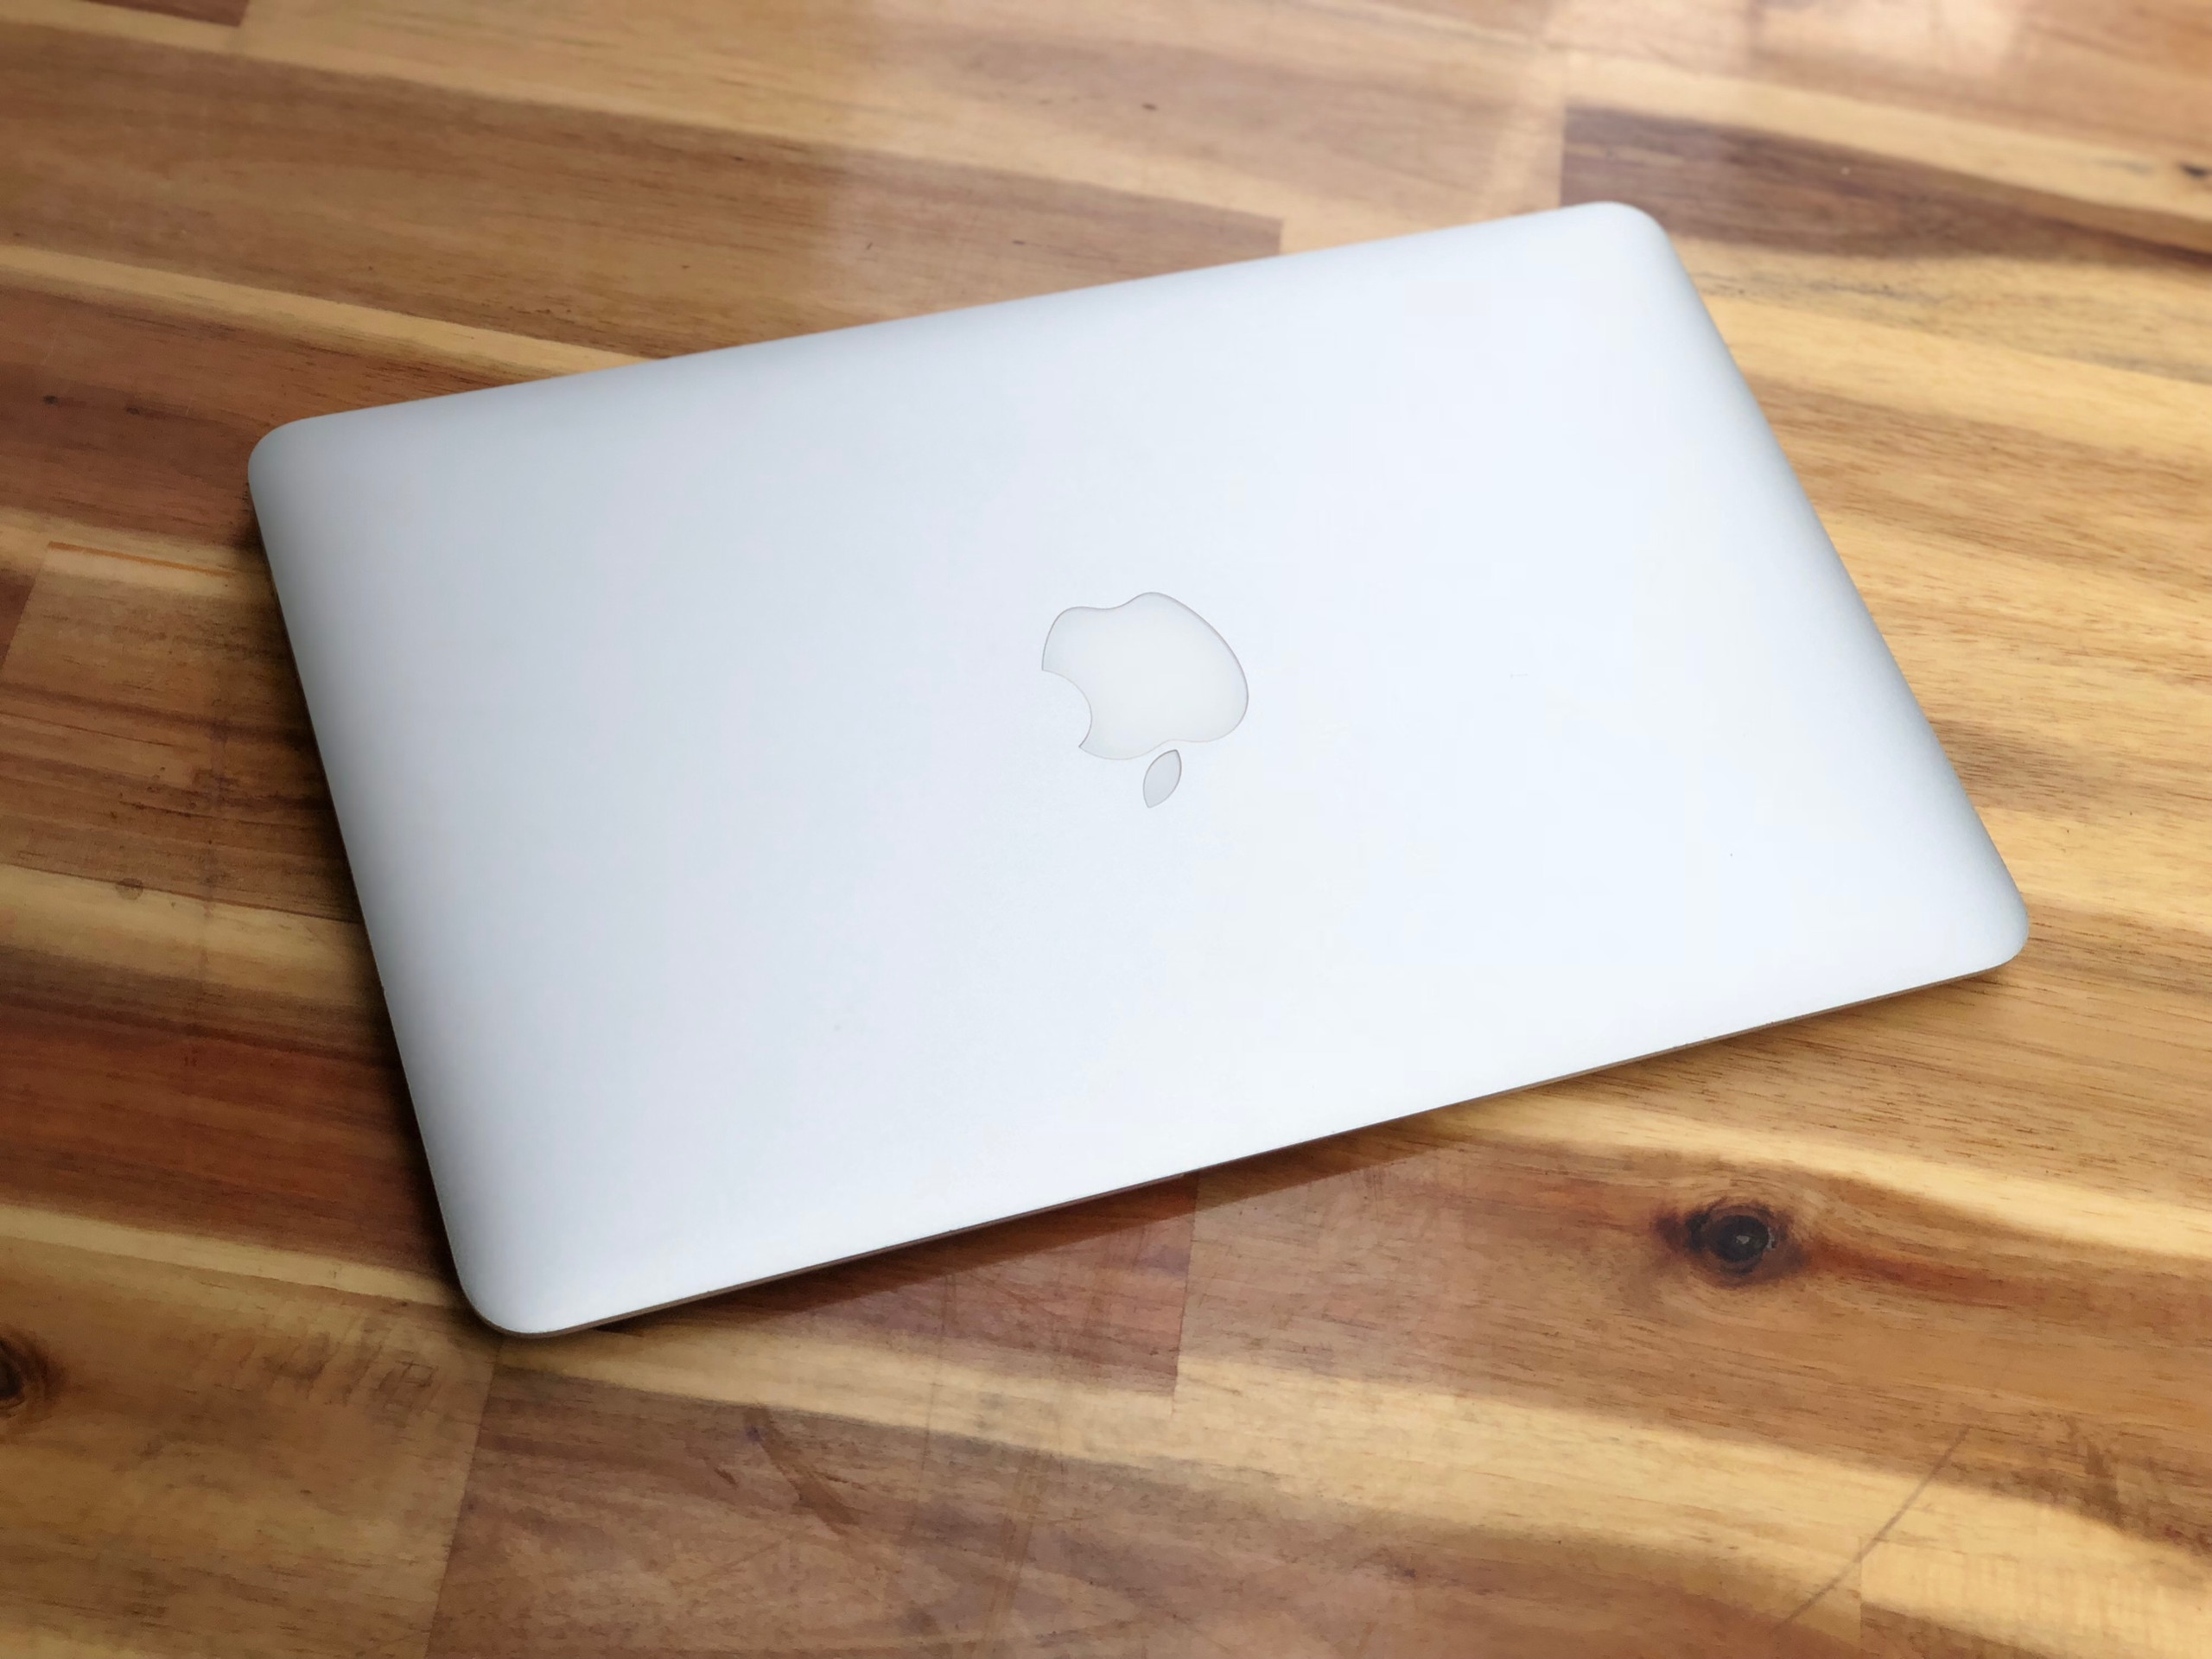 Macbook Air 2015 11in, i5 4G SSD128 Pin Khủng 5-10h Đẹp zin 100%